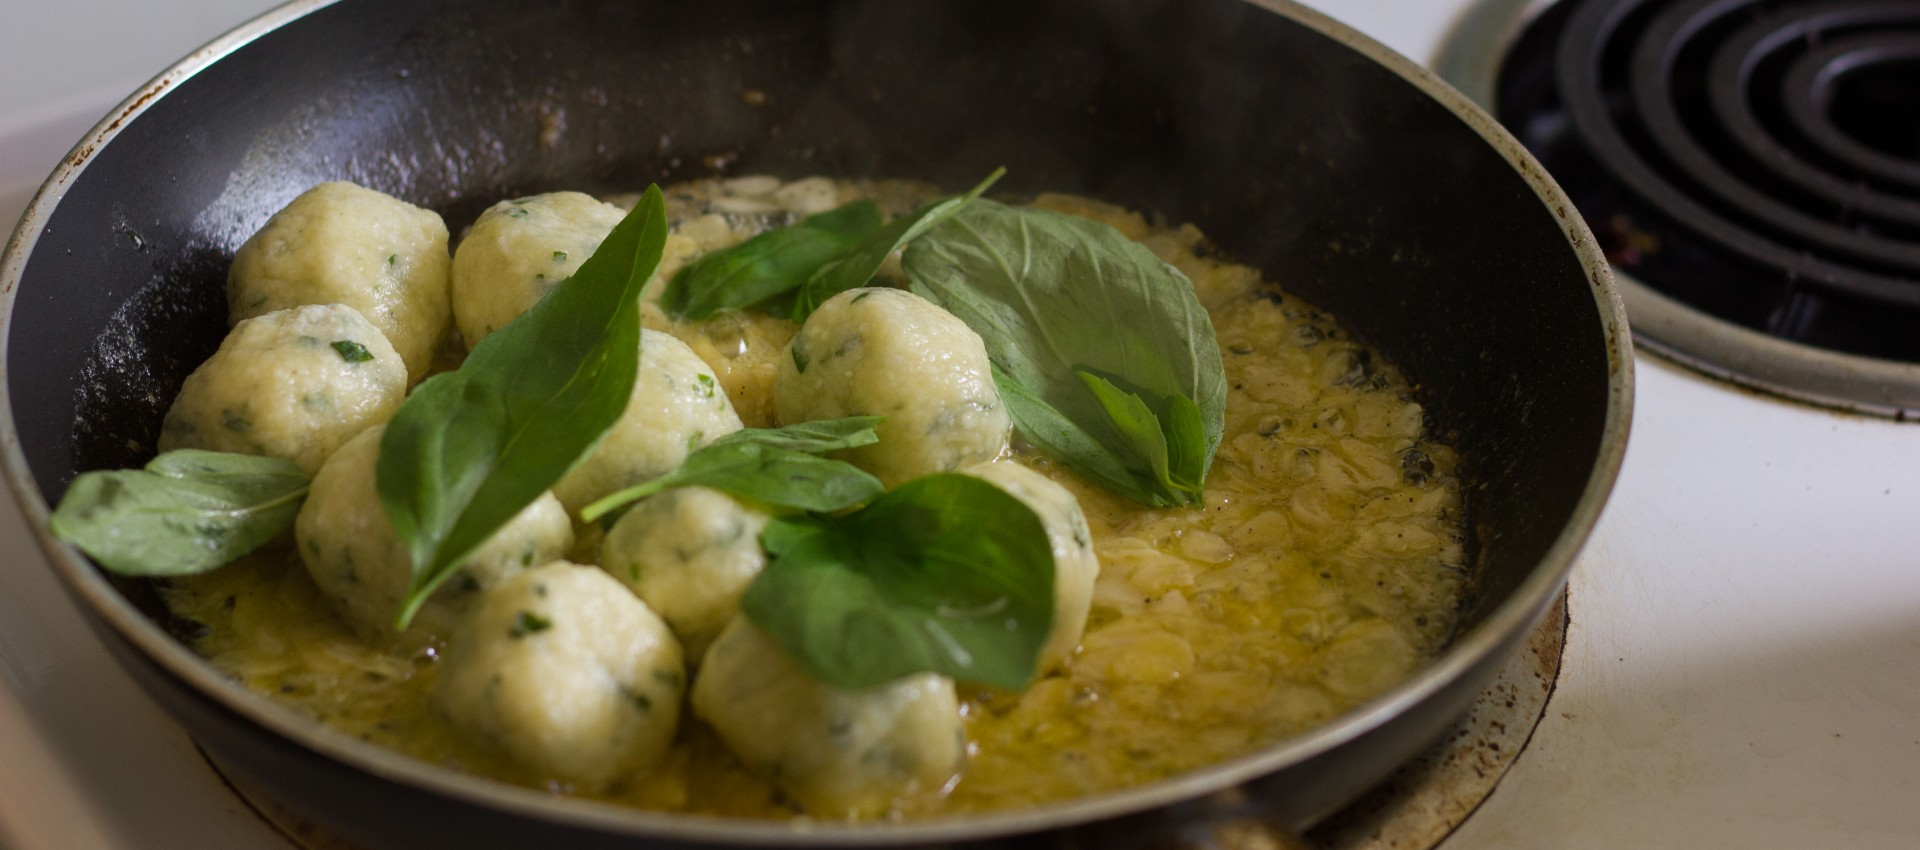 basil-gnudi-with-lemon-butter-almond-sauce-11-of-17